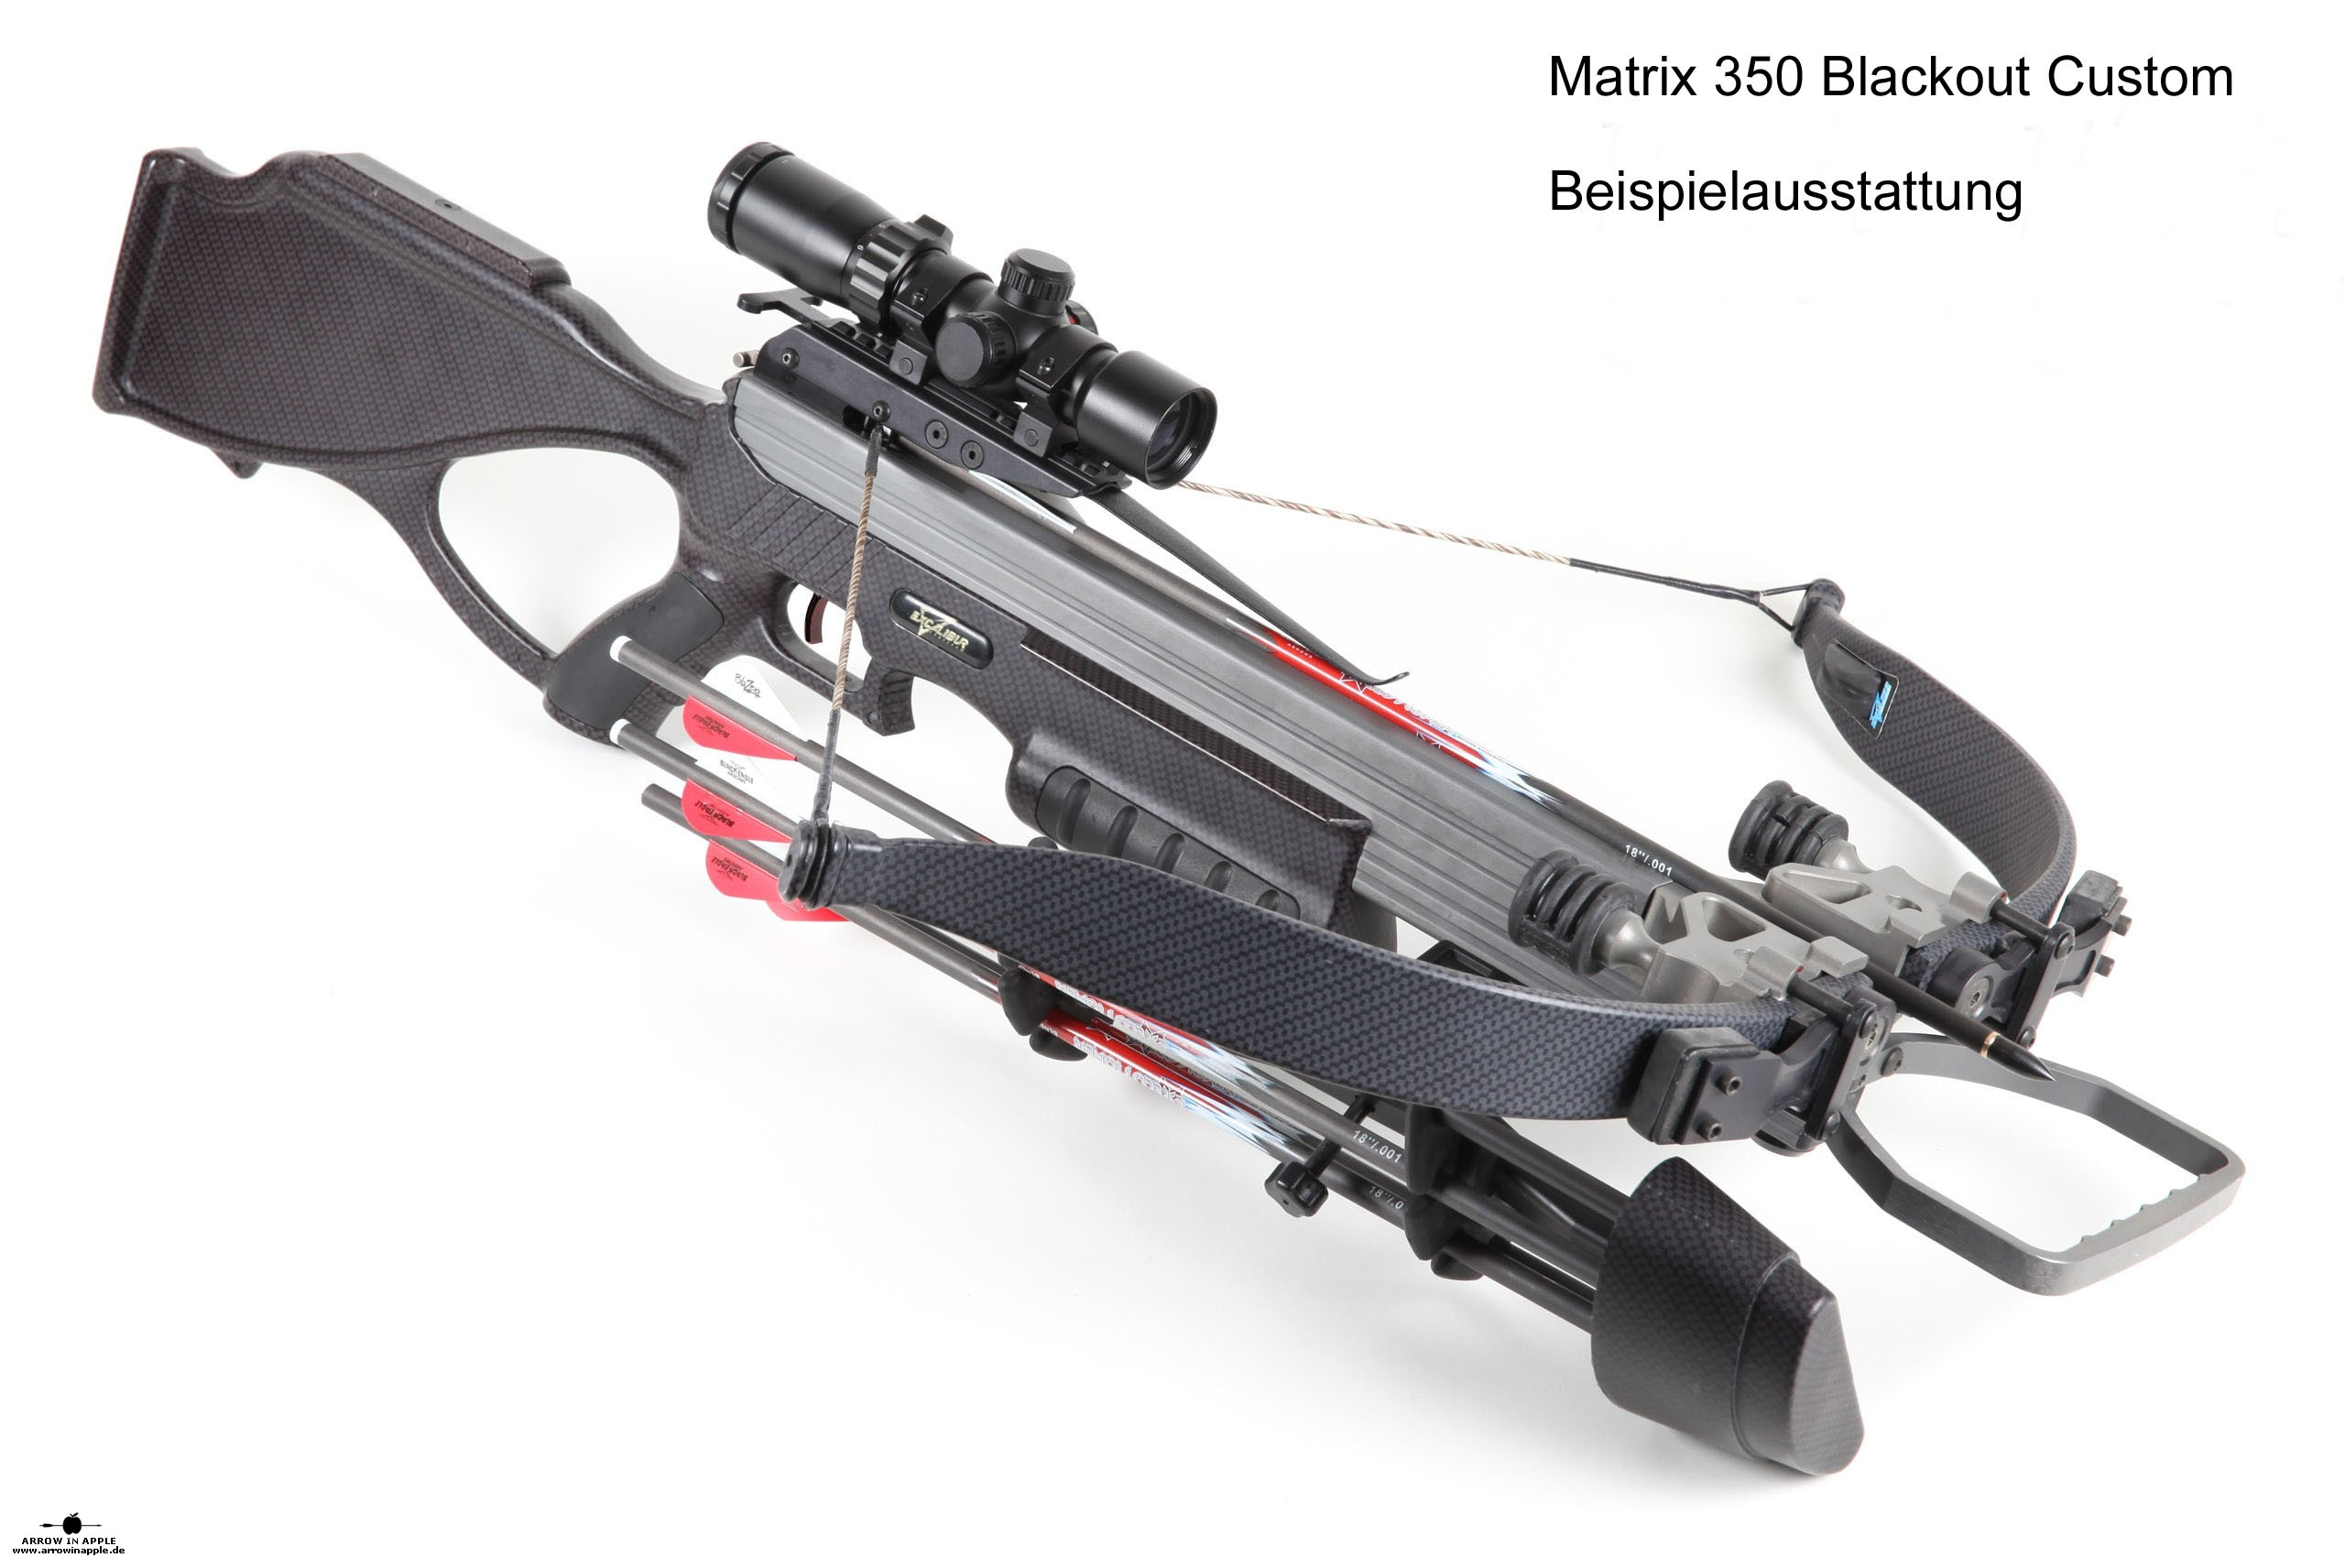 Excalibur Matrix 350 Blackout Custom Crossbow at ARROW IN APPLE